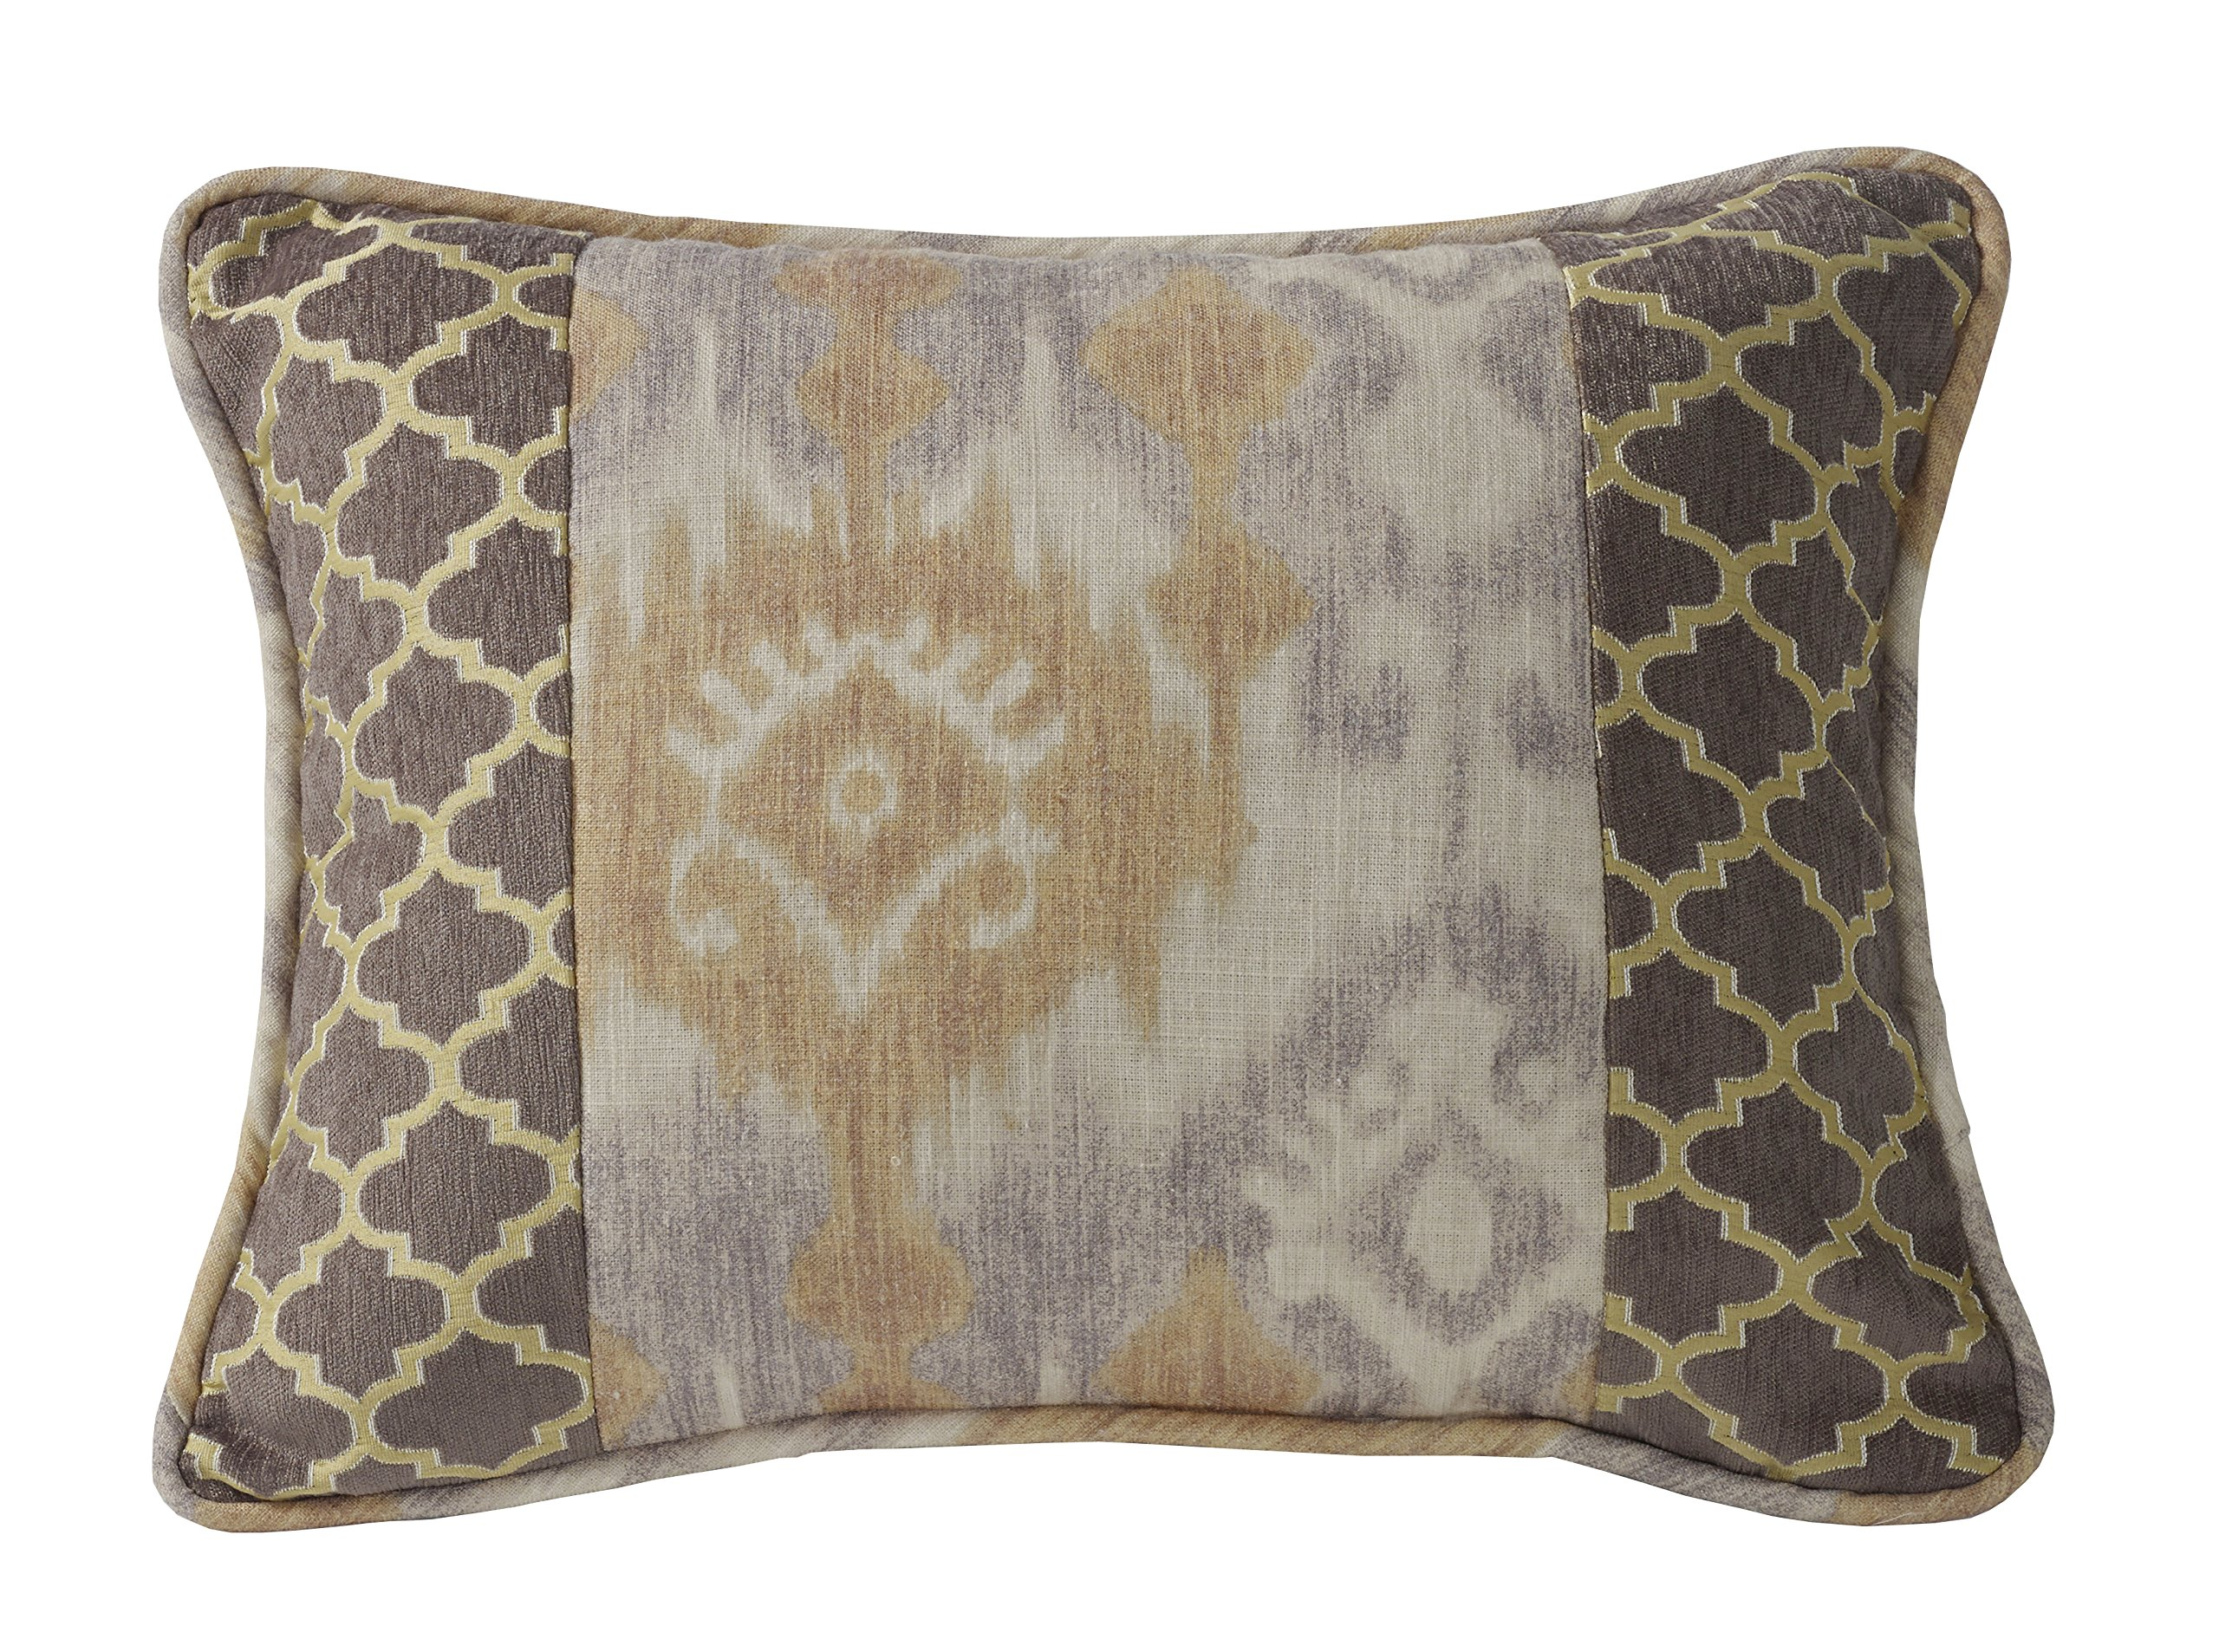 HiEnd Accents Casablanca Ikat and Ogee Pillow, 18 by 18'', Geometric, Yellow